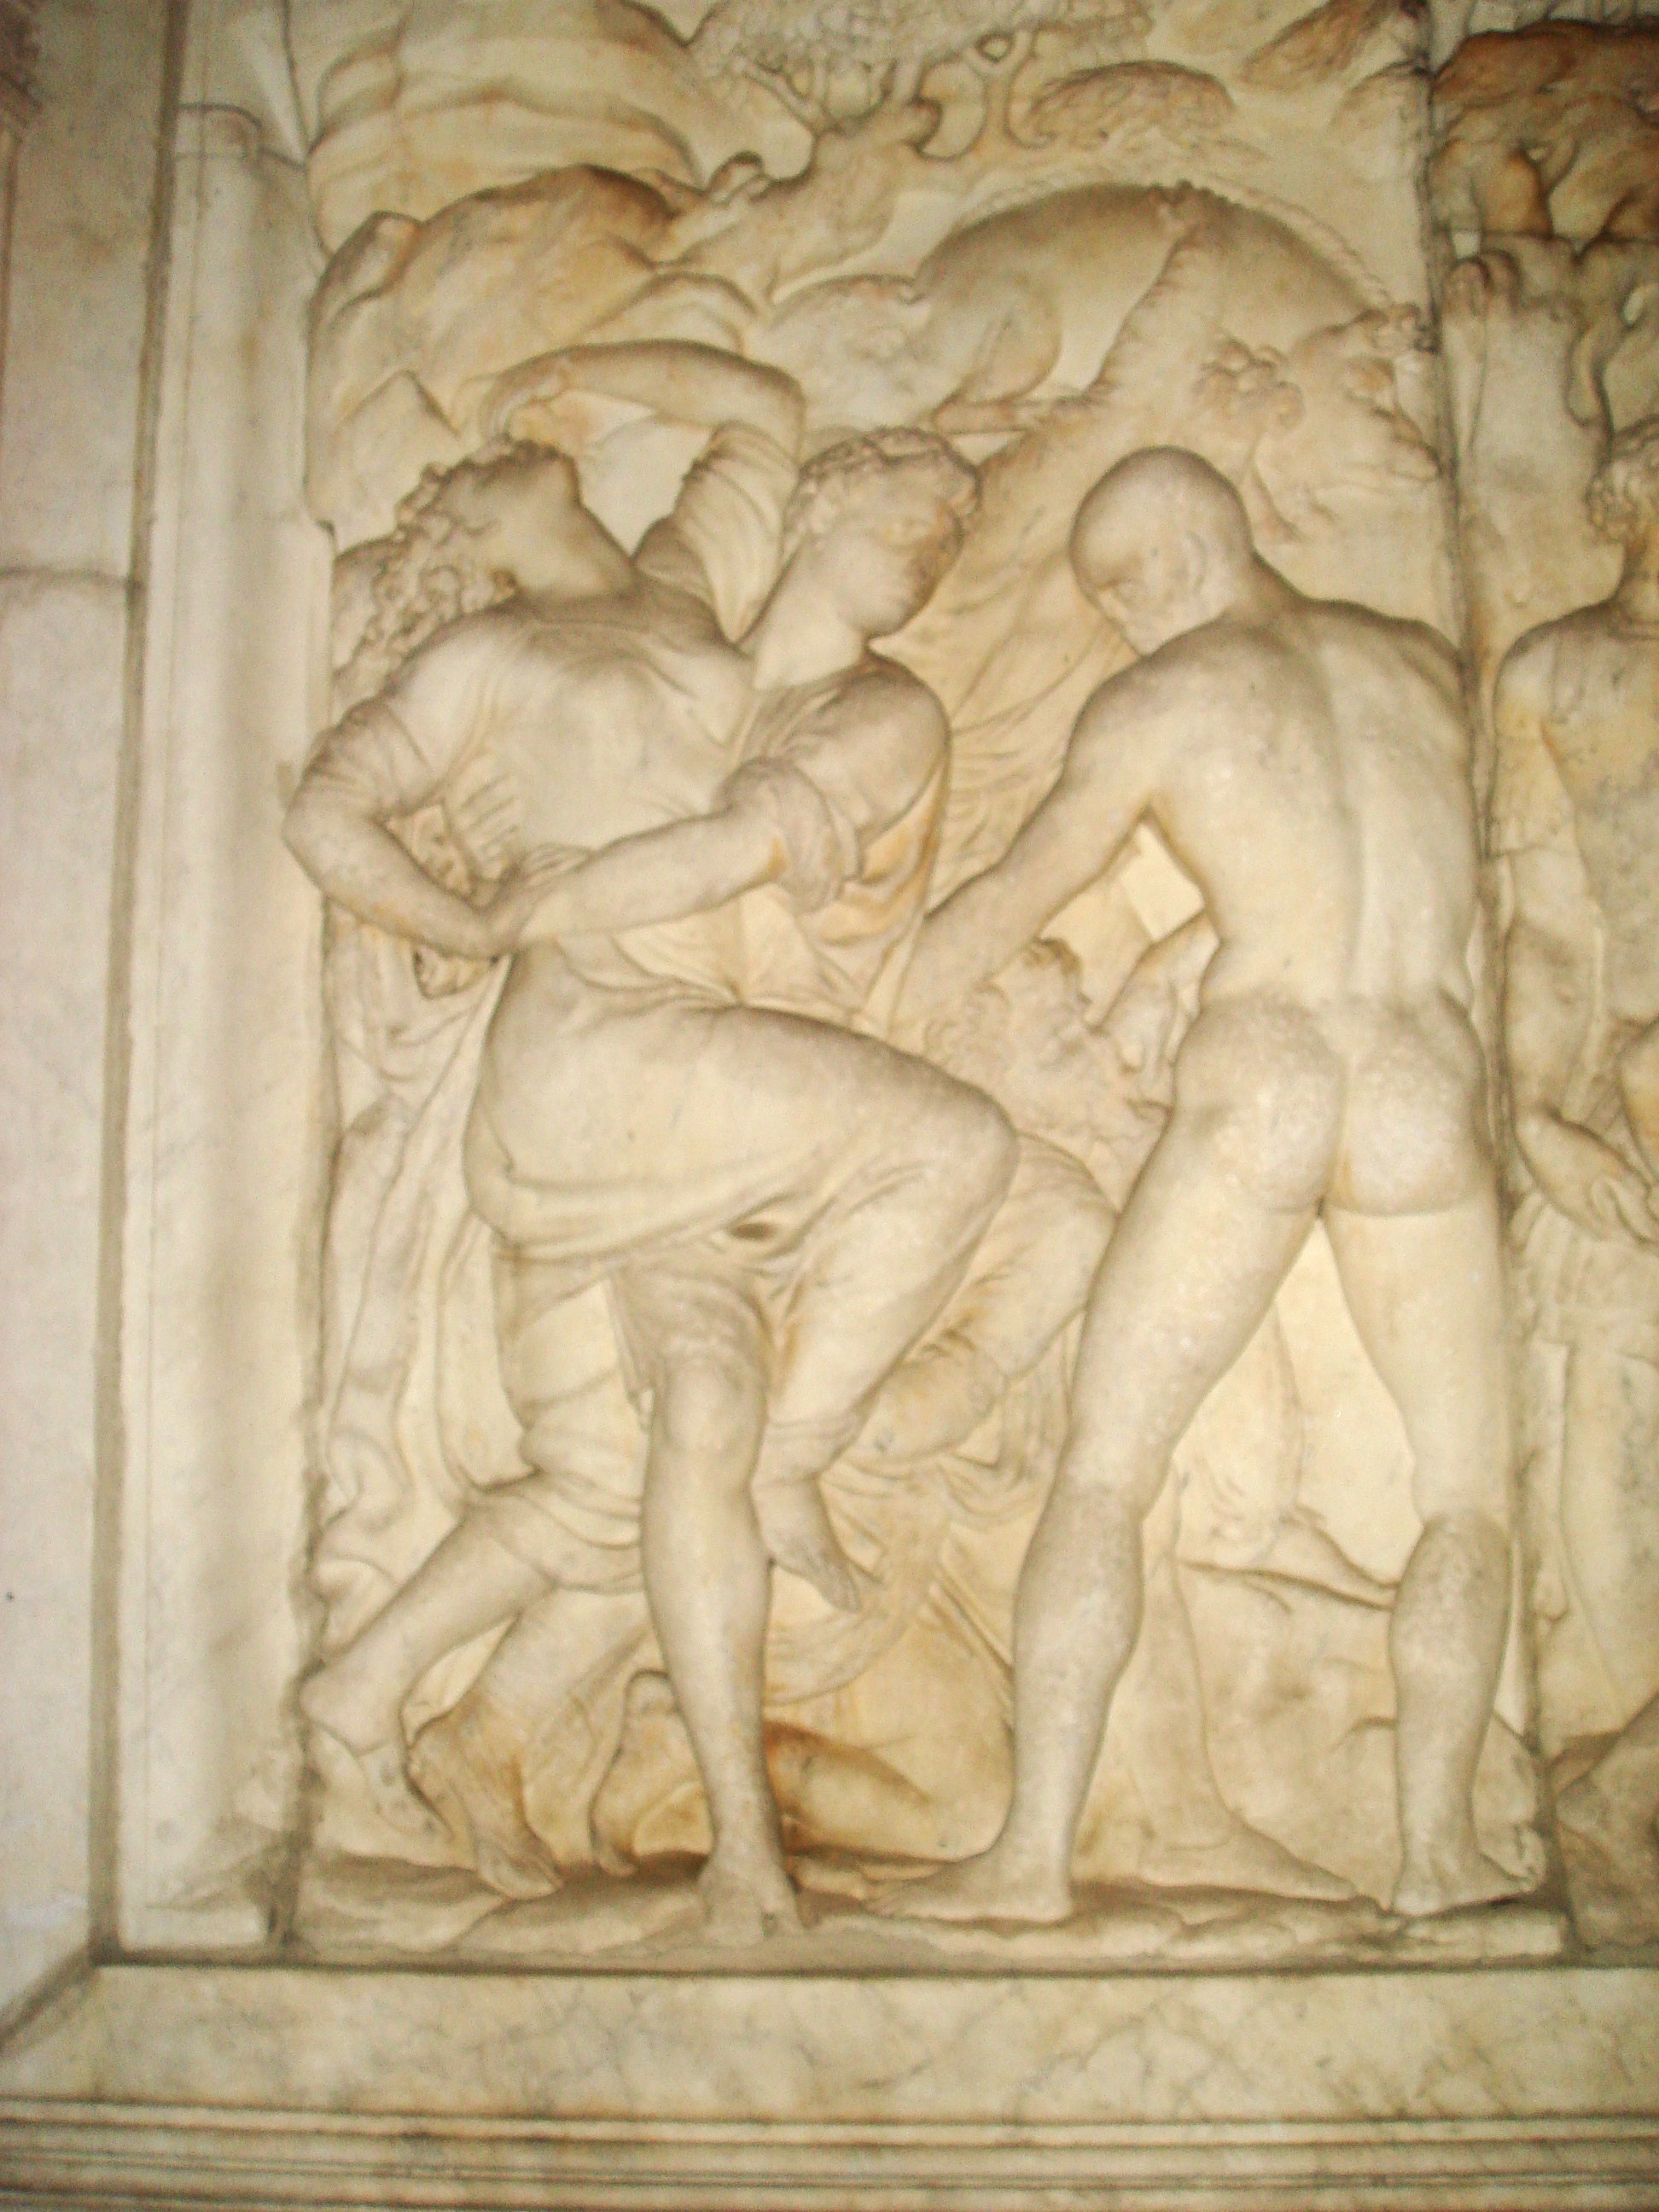 Ancient Chine Torture Porn wartime sexual violence - wikipedia